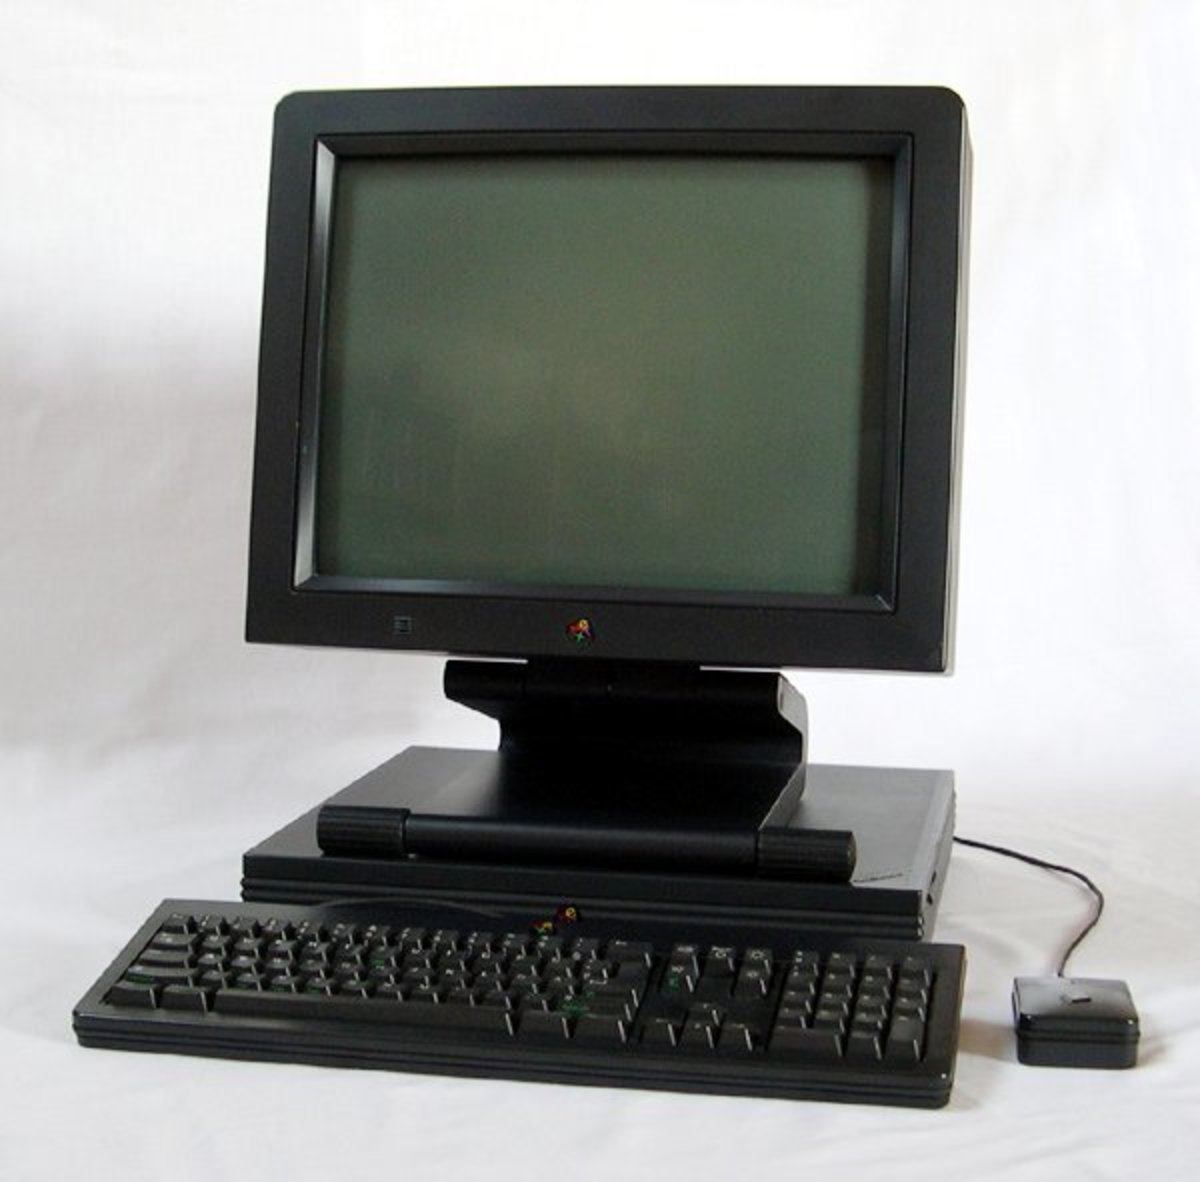 NeXT workstation was first released in 1990, priced at $9,999. It was largely unaffordable.